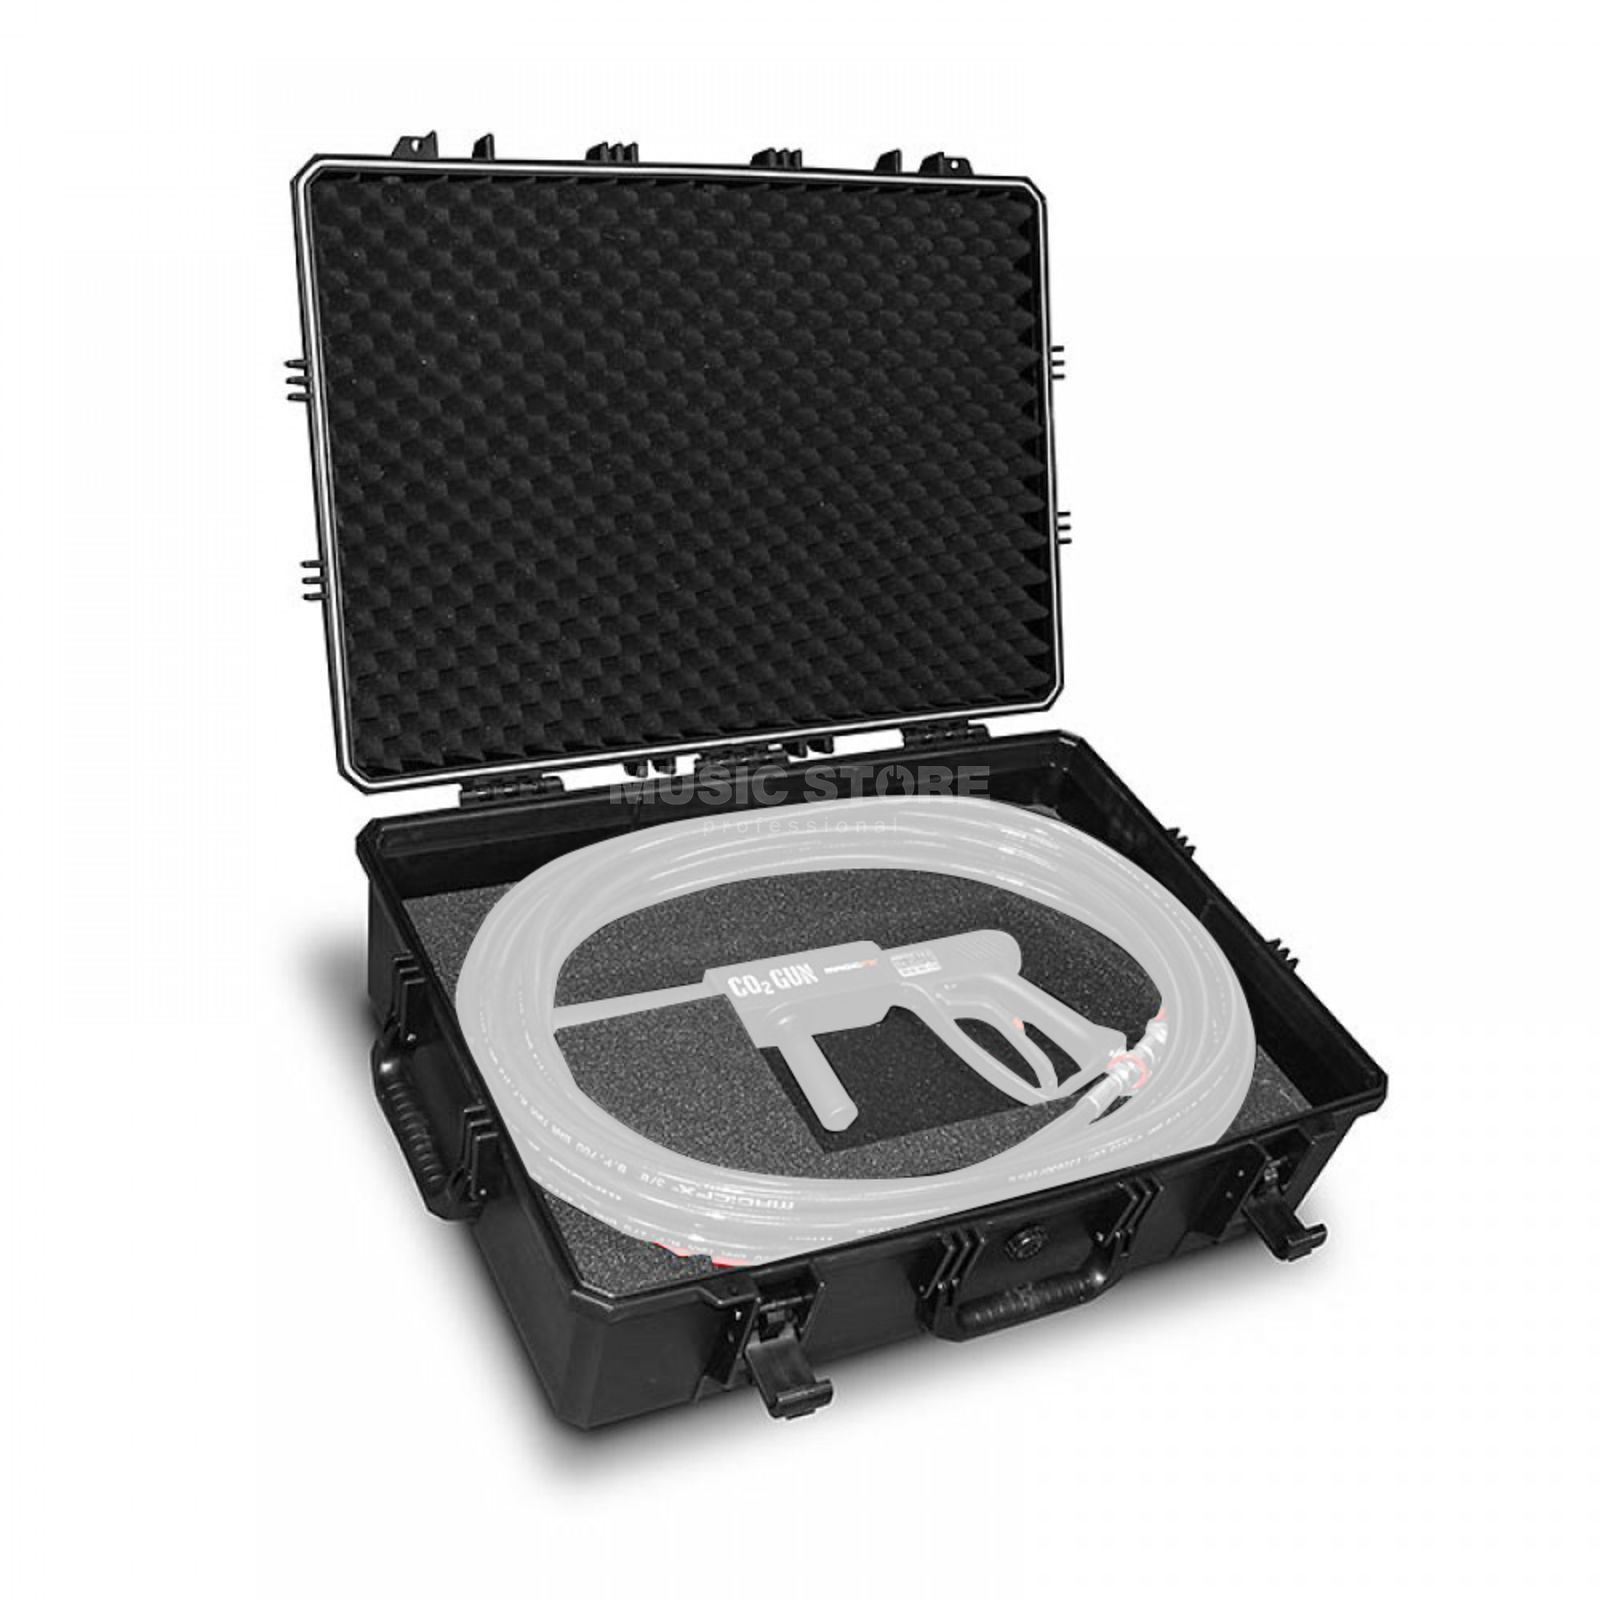 MagicFX Case for CO2 Gun Produktbillede